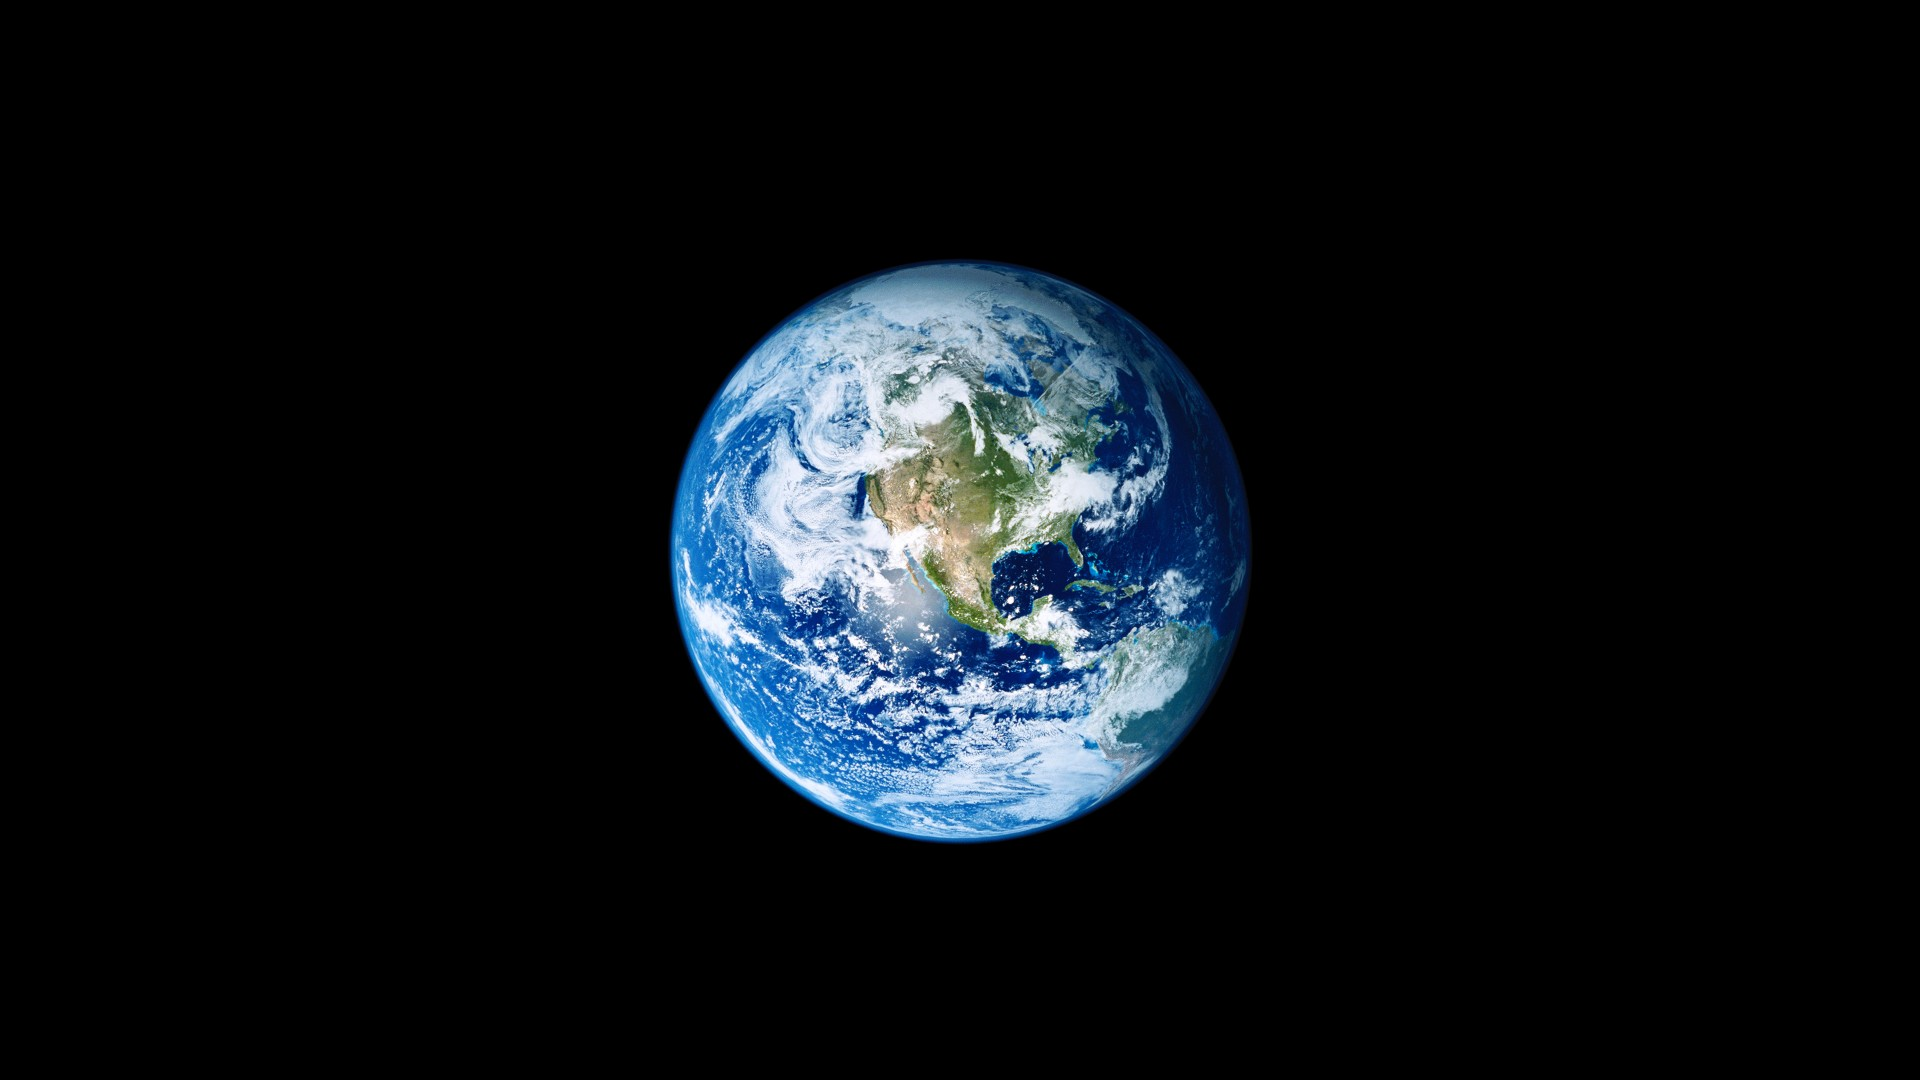 Iphone  Wallpaper Hd Earth Ios 11 Iphone 8 Iphone X Stock 4k Wallpapers Hd